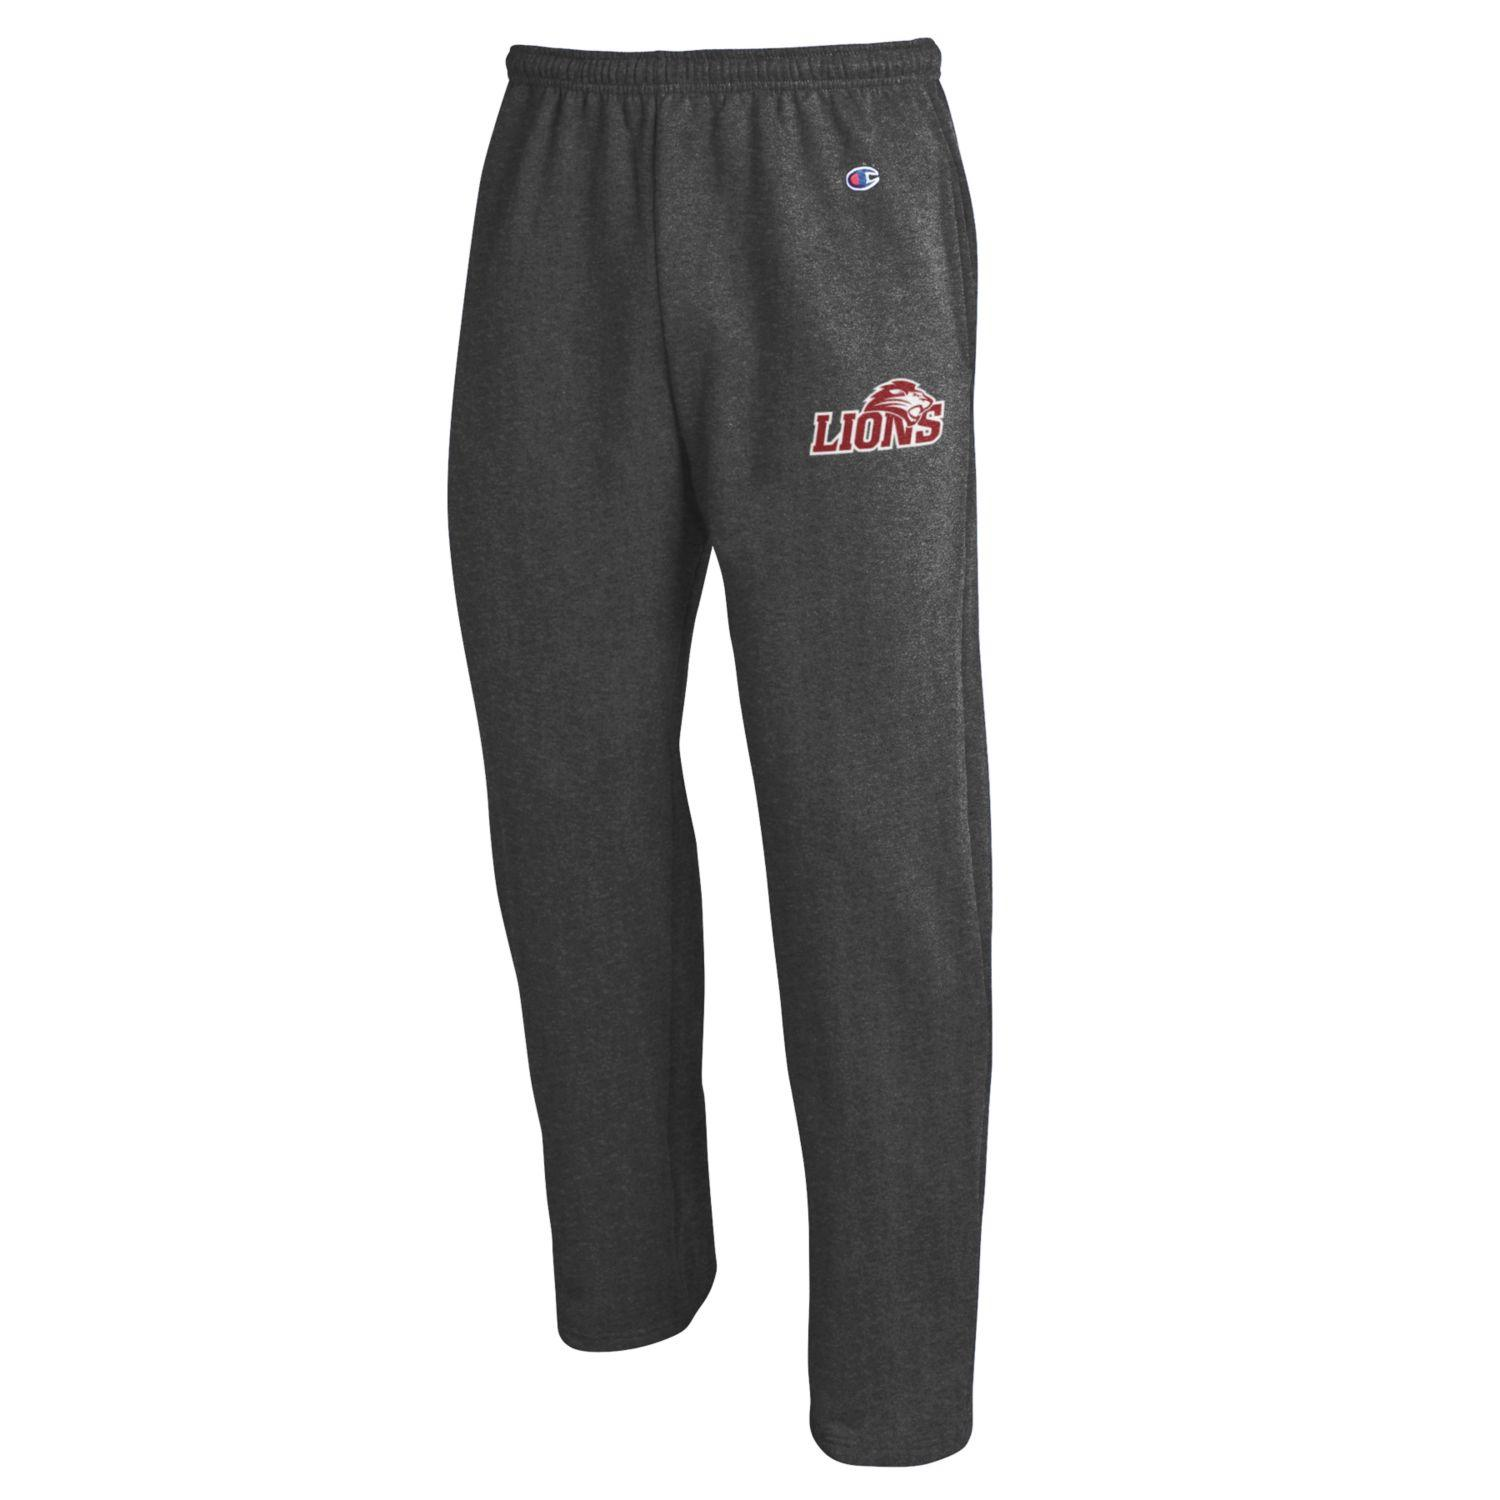 Lions Open Bottom Sweatpants